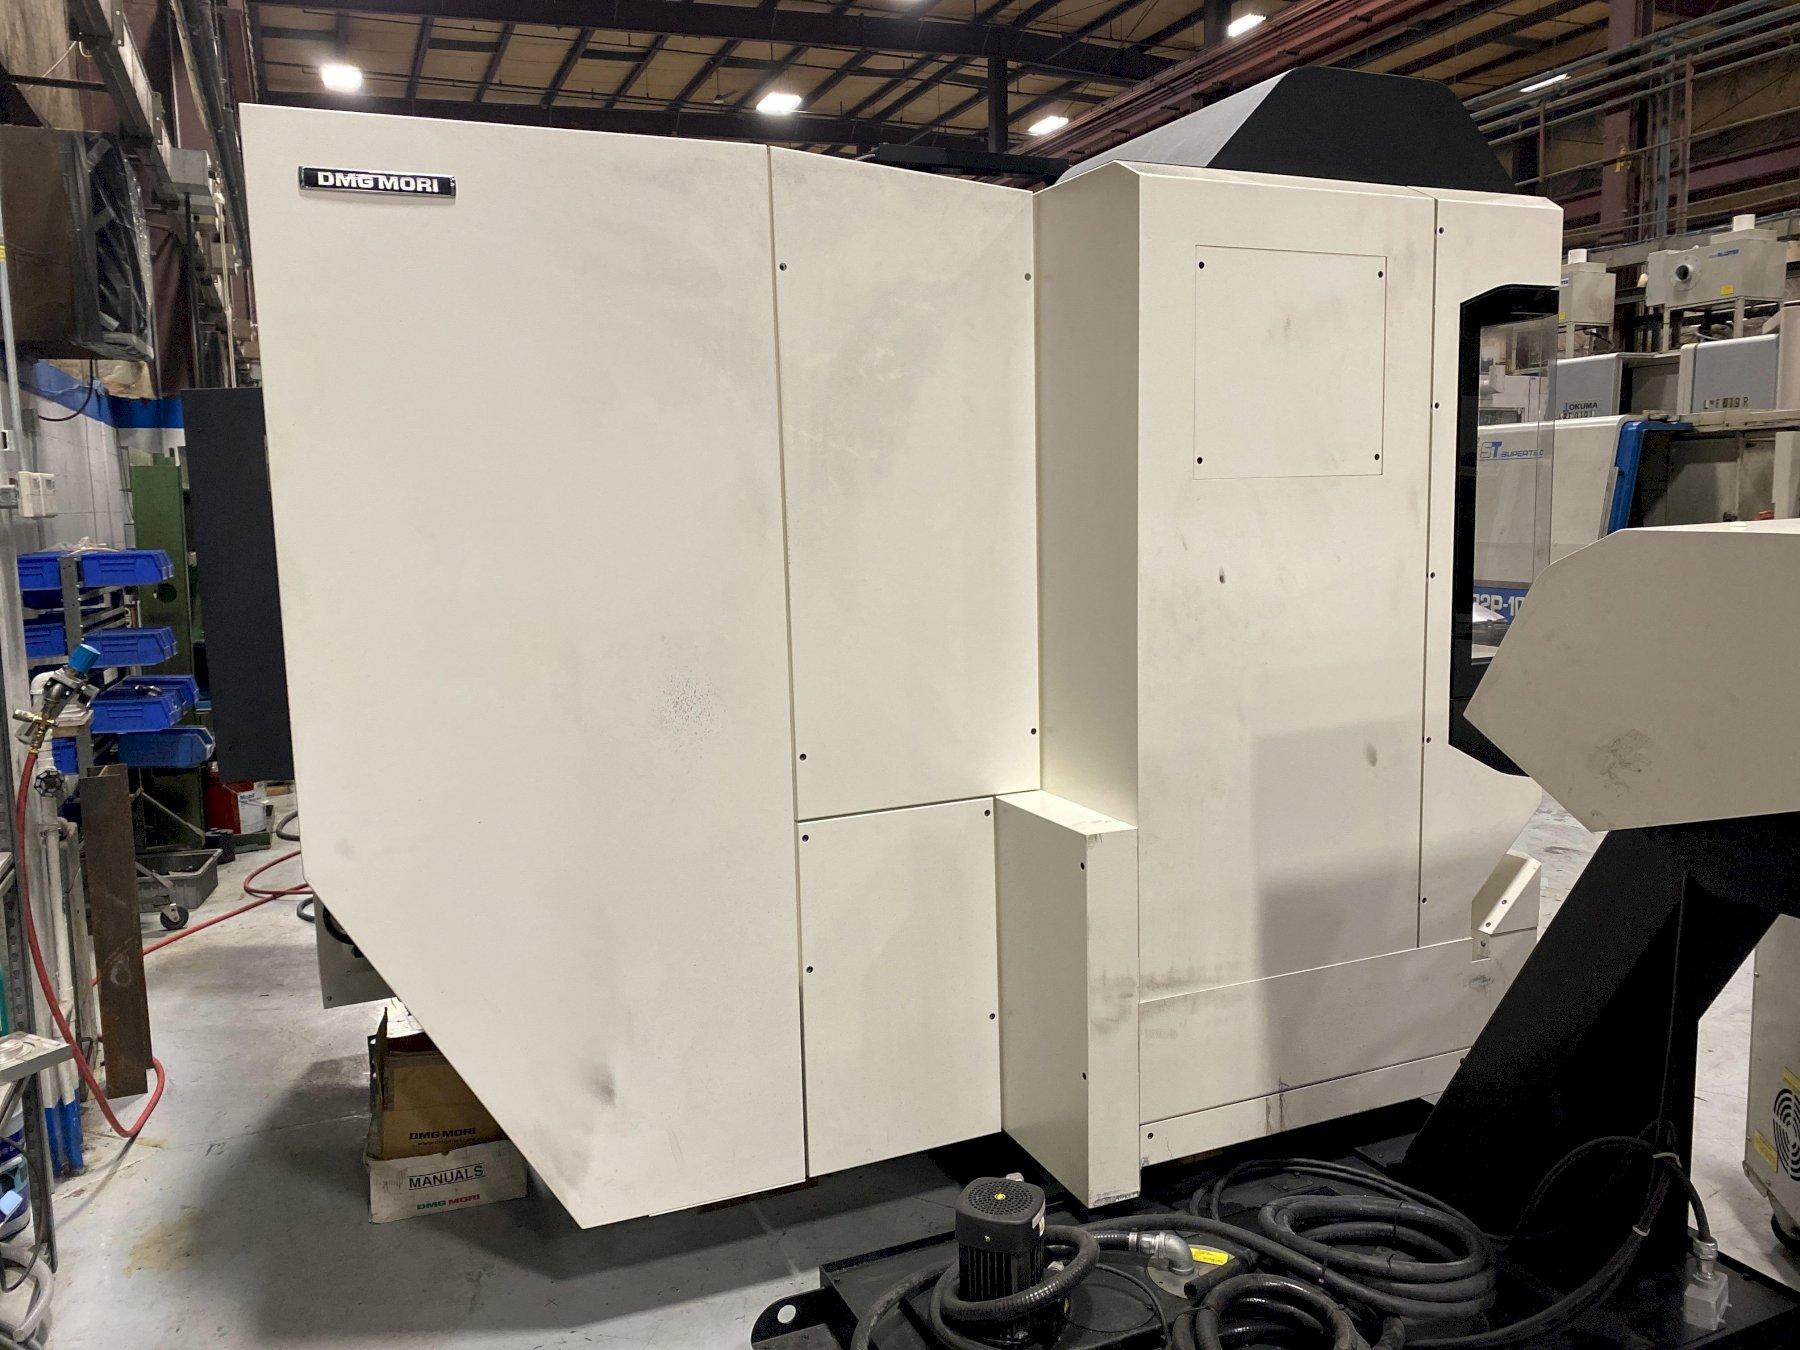 DMG Mori ecoMill 1100v CNC Vertical Machining Center